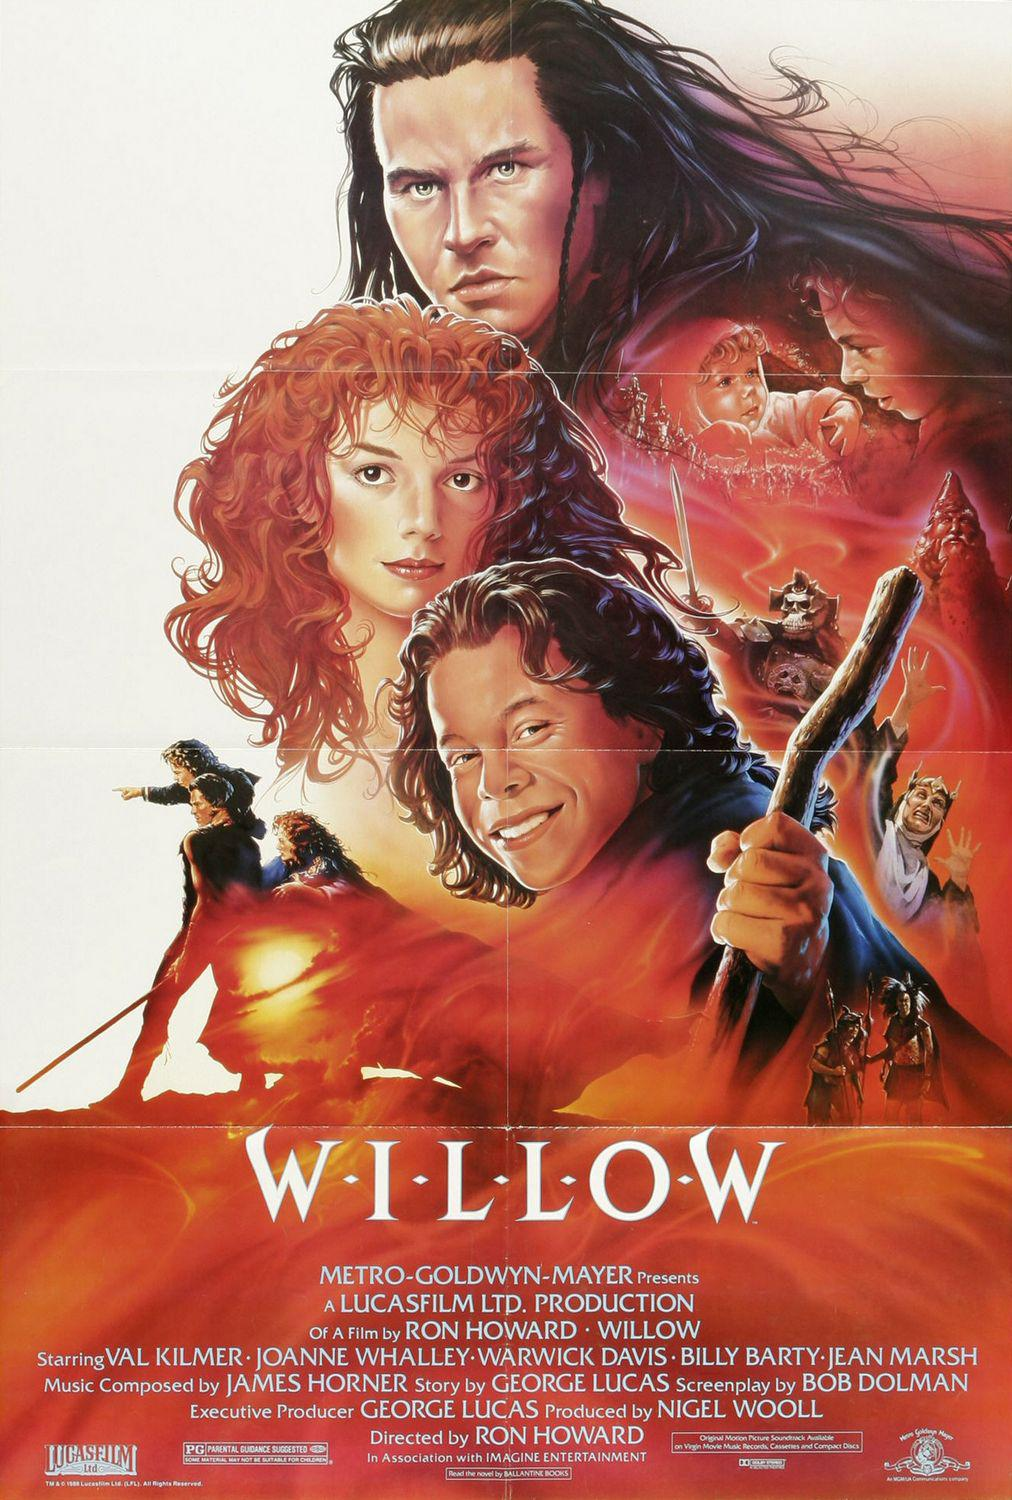 Willow - fantasy film poster - Lucas Film by Ron Howard - Val Kilmer - Joanne Whalley - Warwick Davis - Billy Barty - Jean Marsh